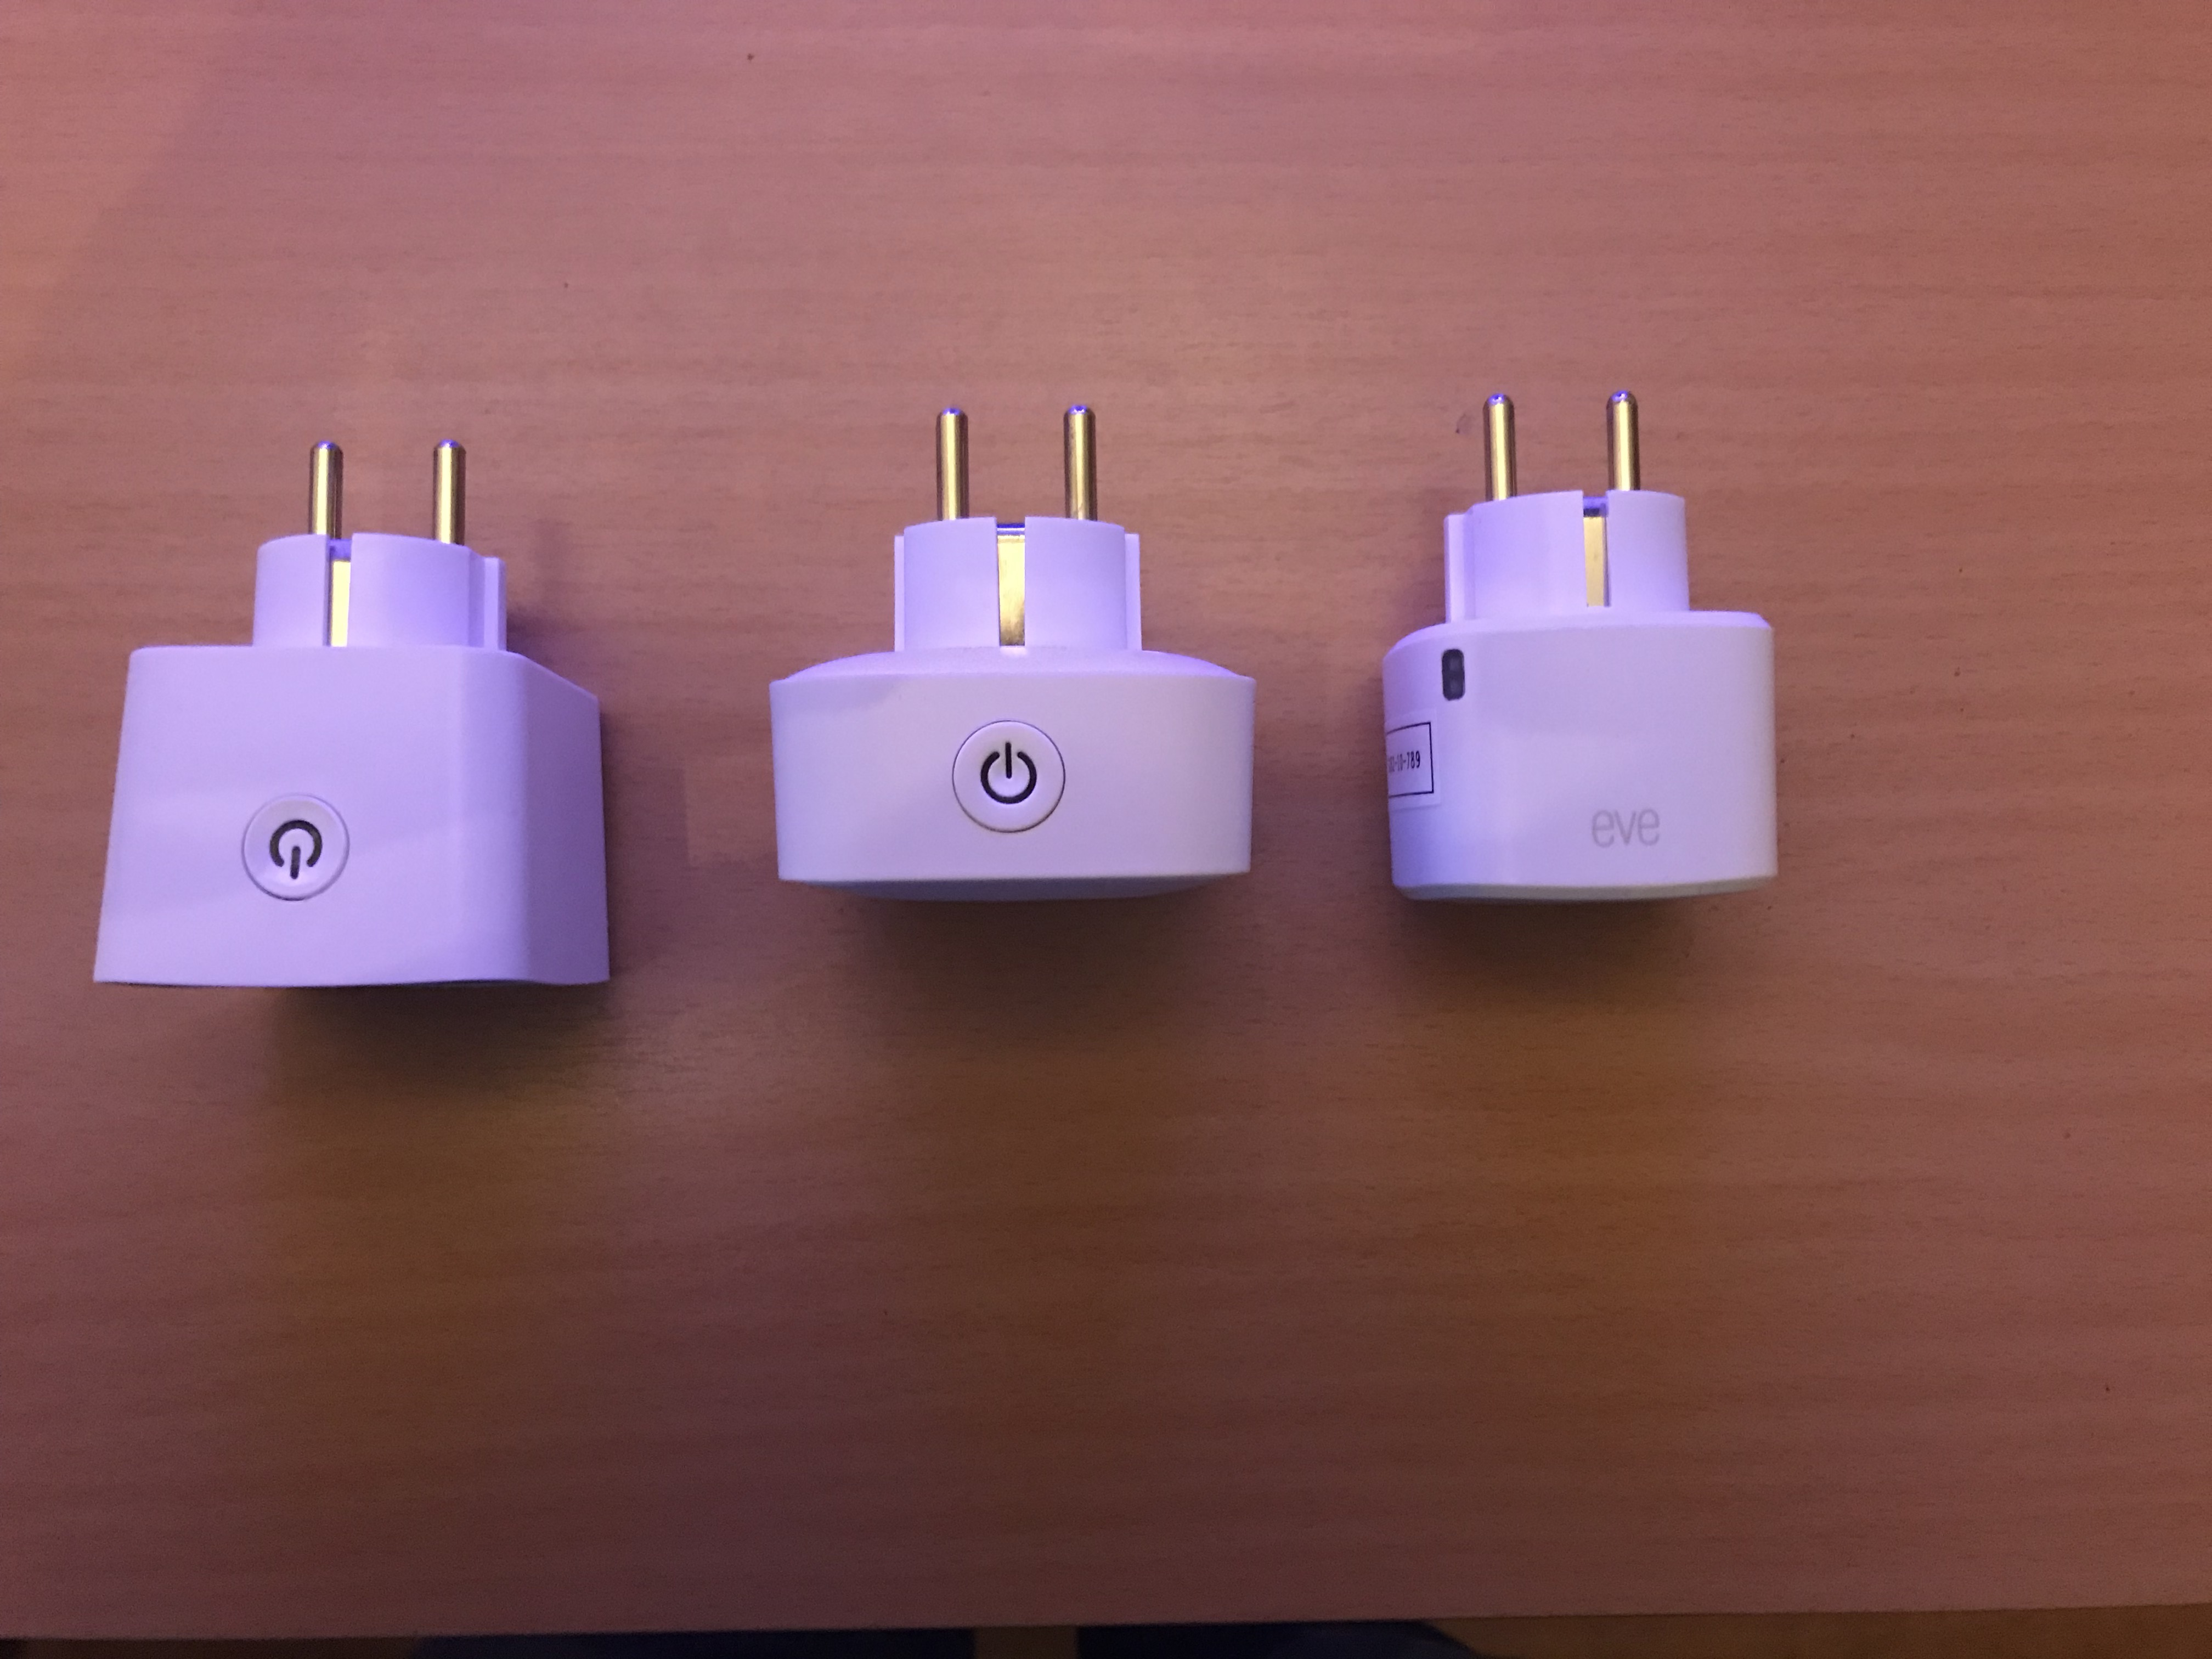 Question: Which powerplugs supported for Deconz and REST-api